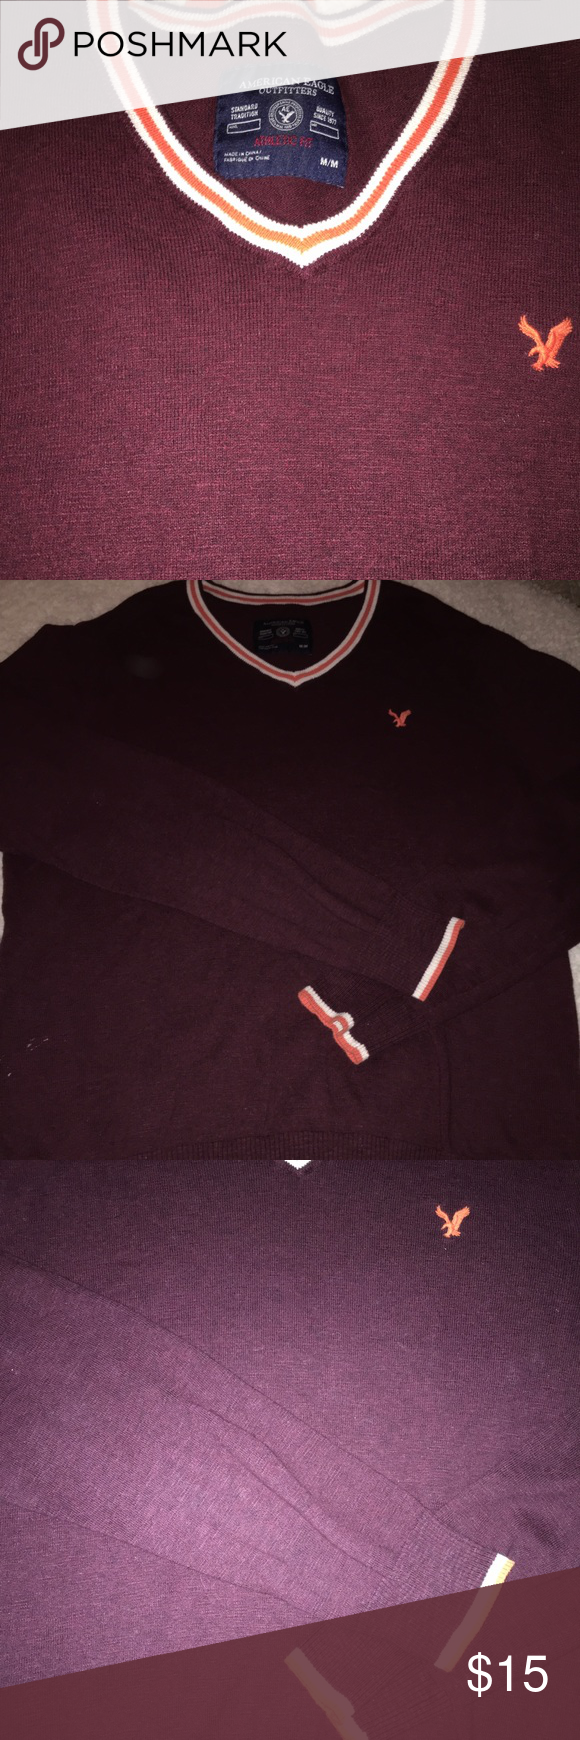 American Eagle mens sweater. Medium Mens American Eagle Outfitters sweater. Gently used, great condition. Maroon color with orange and white trim. American Eagle Outfitters Sweaters V-Neck